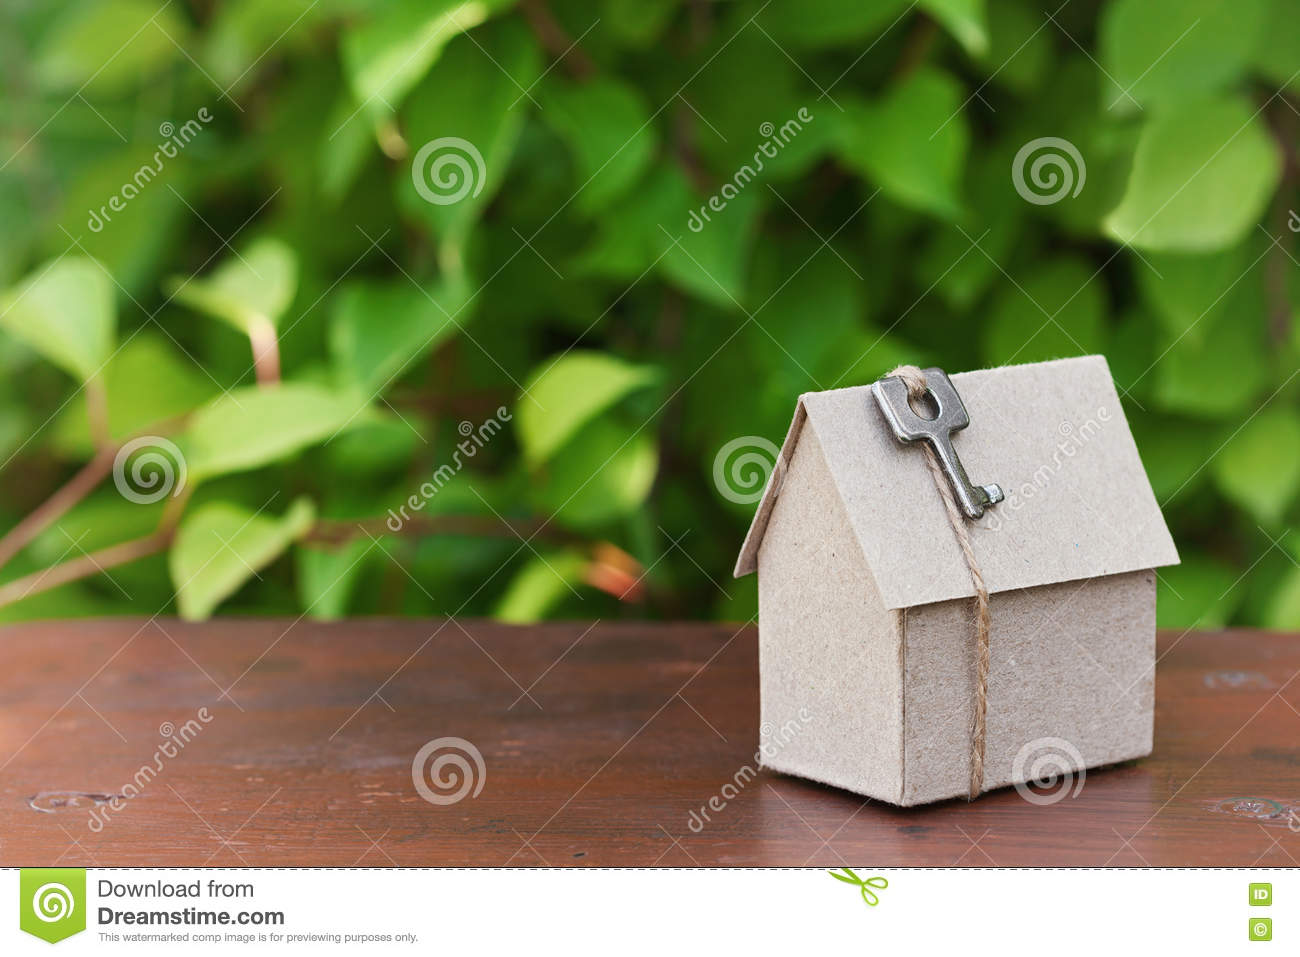 Model of cardboard house with key against green leaves background. Purchase, rent and construction country real estate concept.